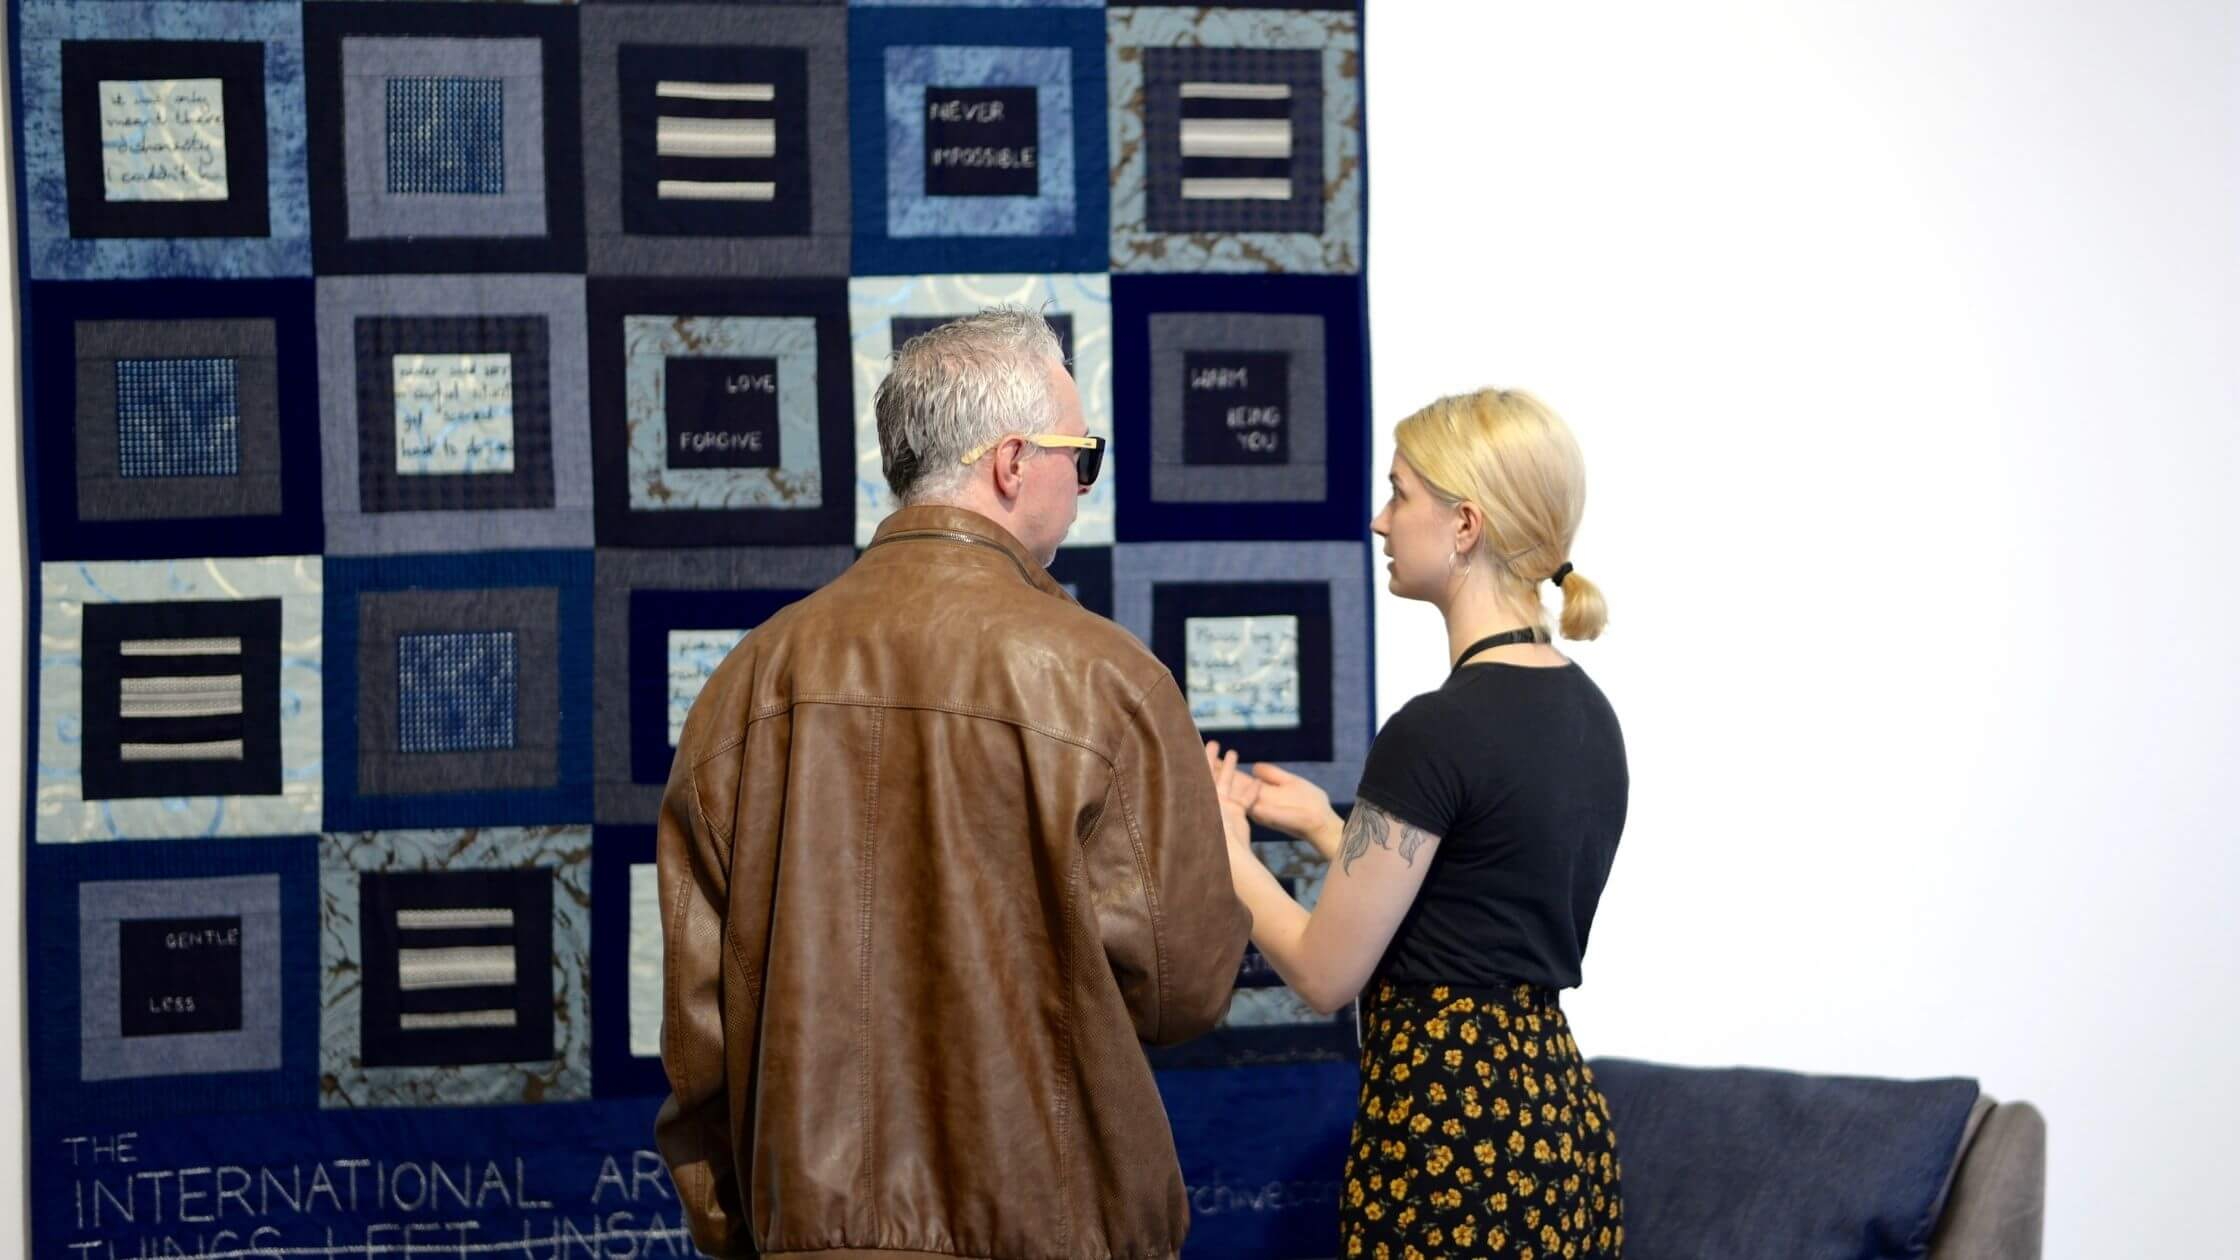 Image of Harriet talking to a man as they admire a patchwork quilted piece of art hung on a gallery wall.